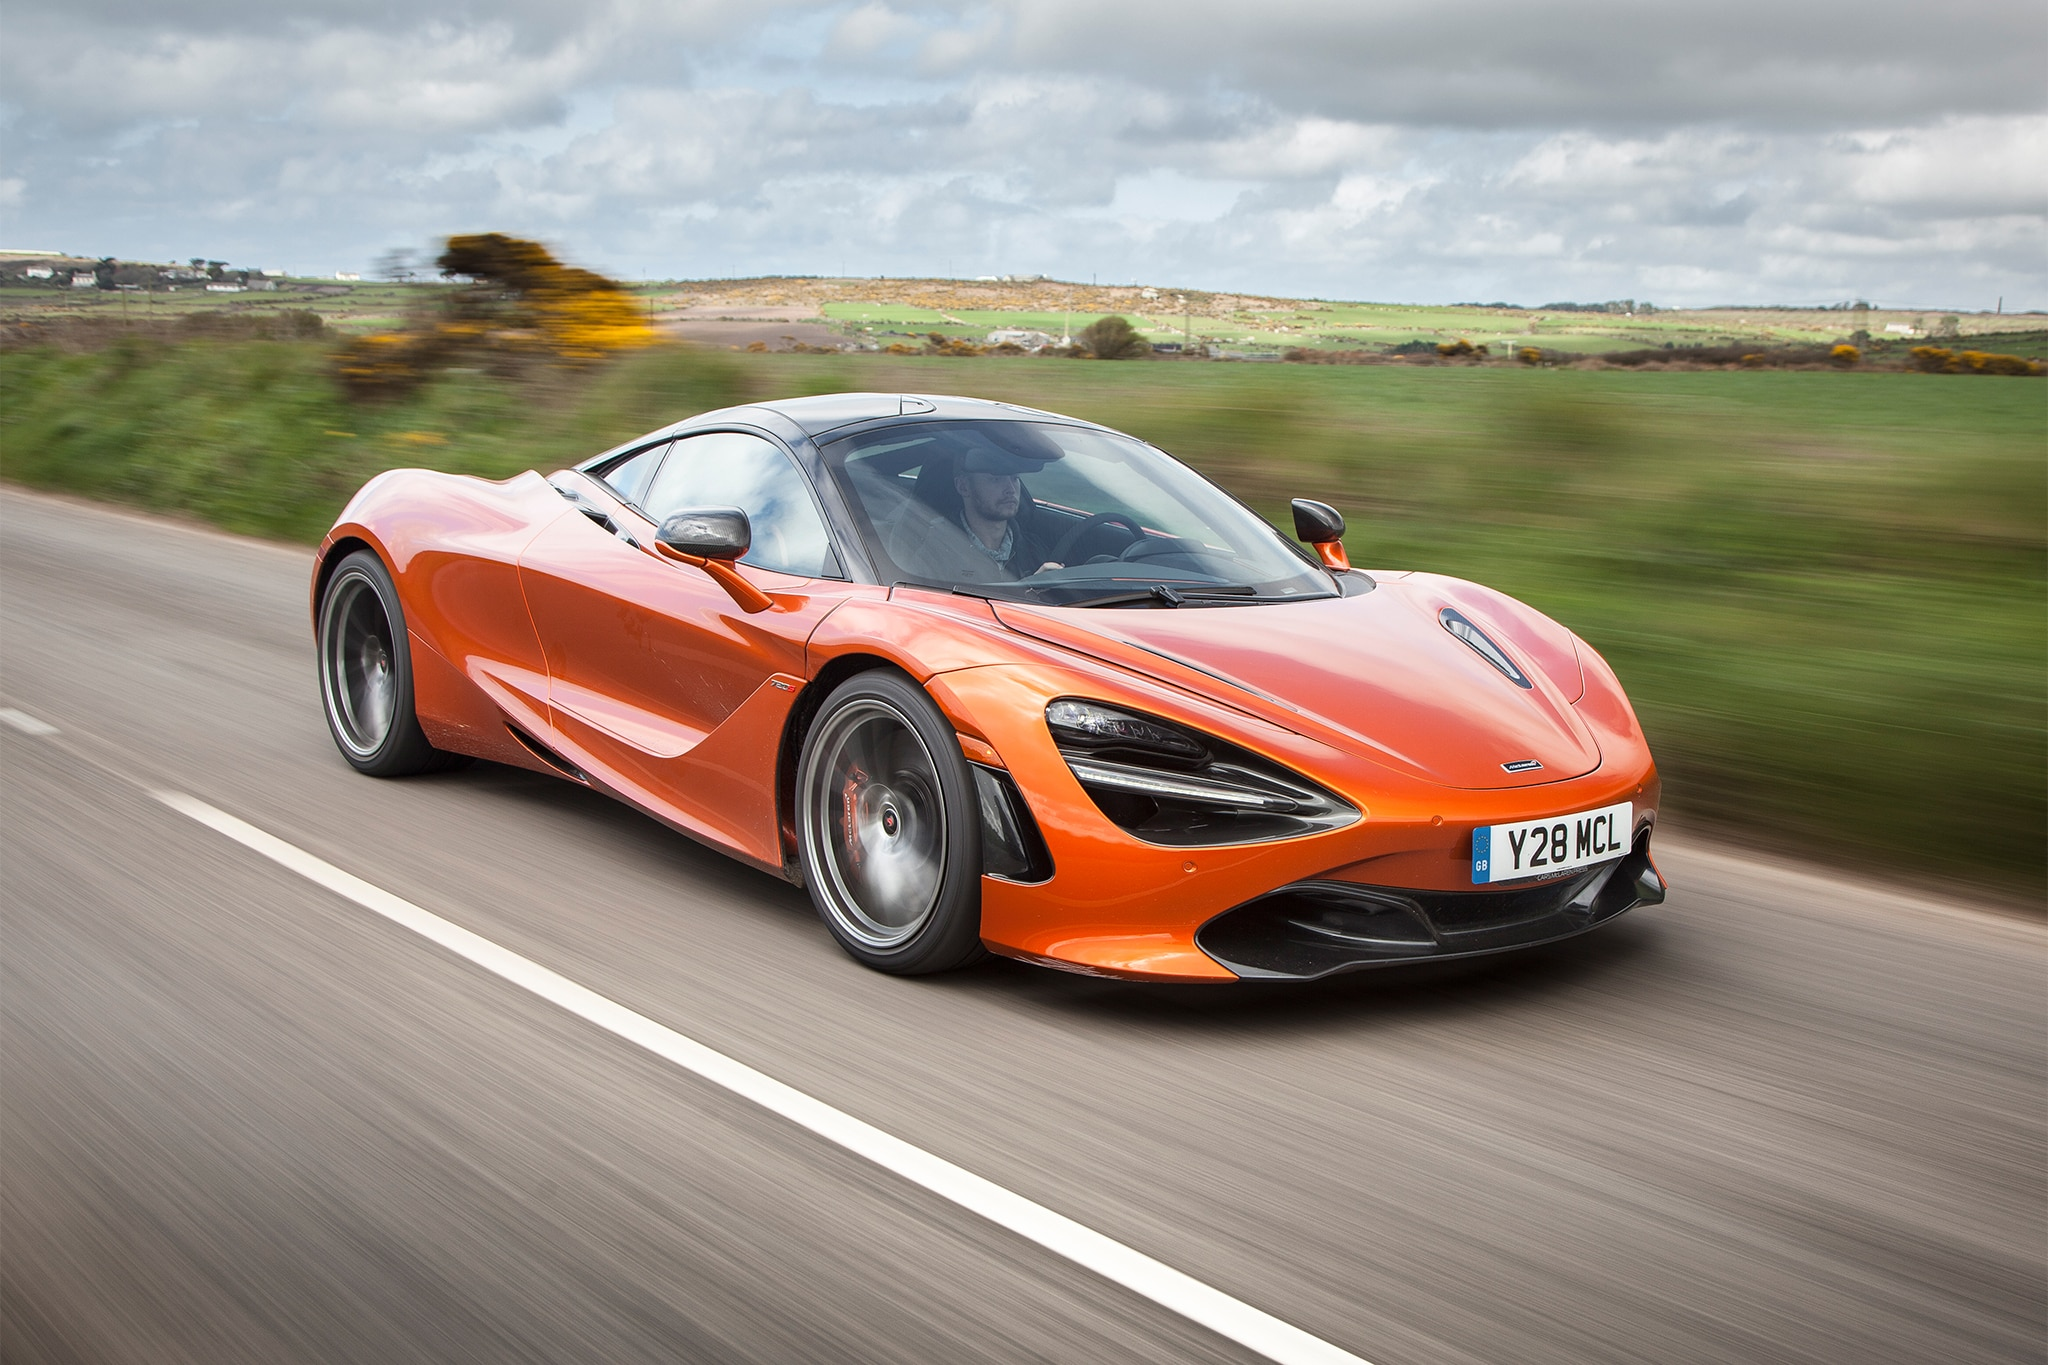 2018 McLaren 720S Front Three Quarter In Motion 05 3